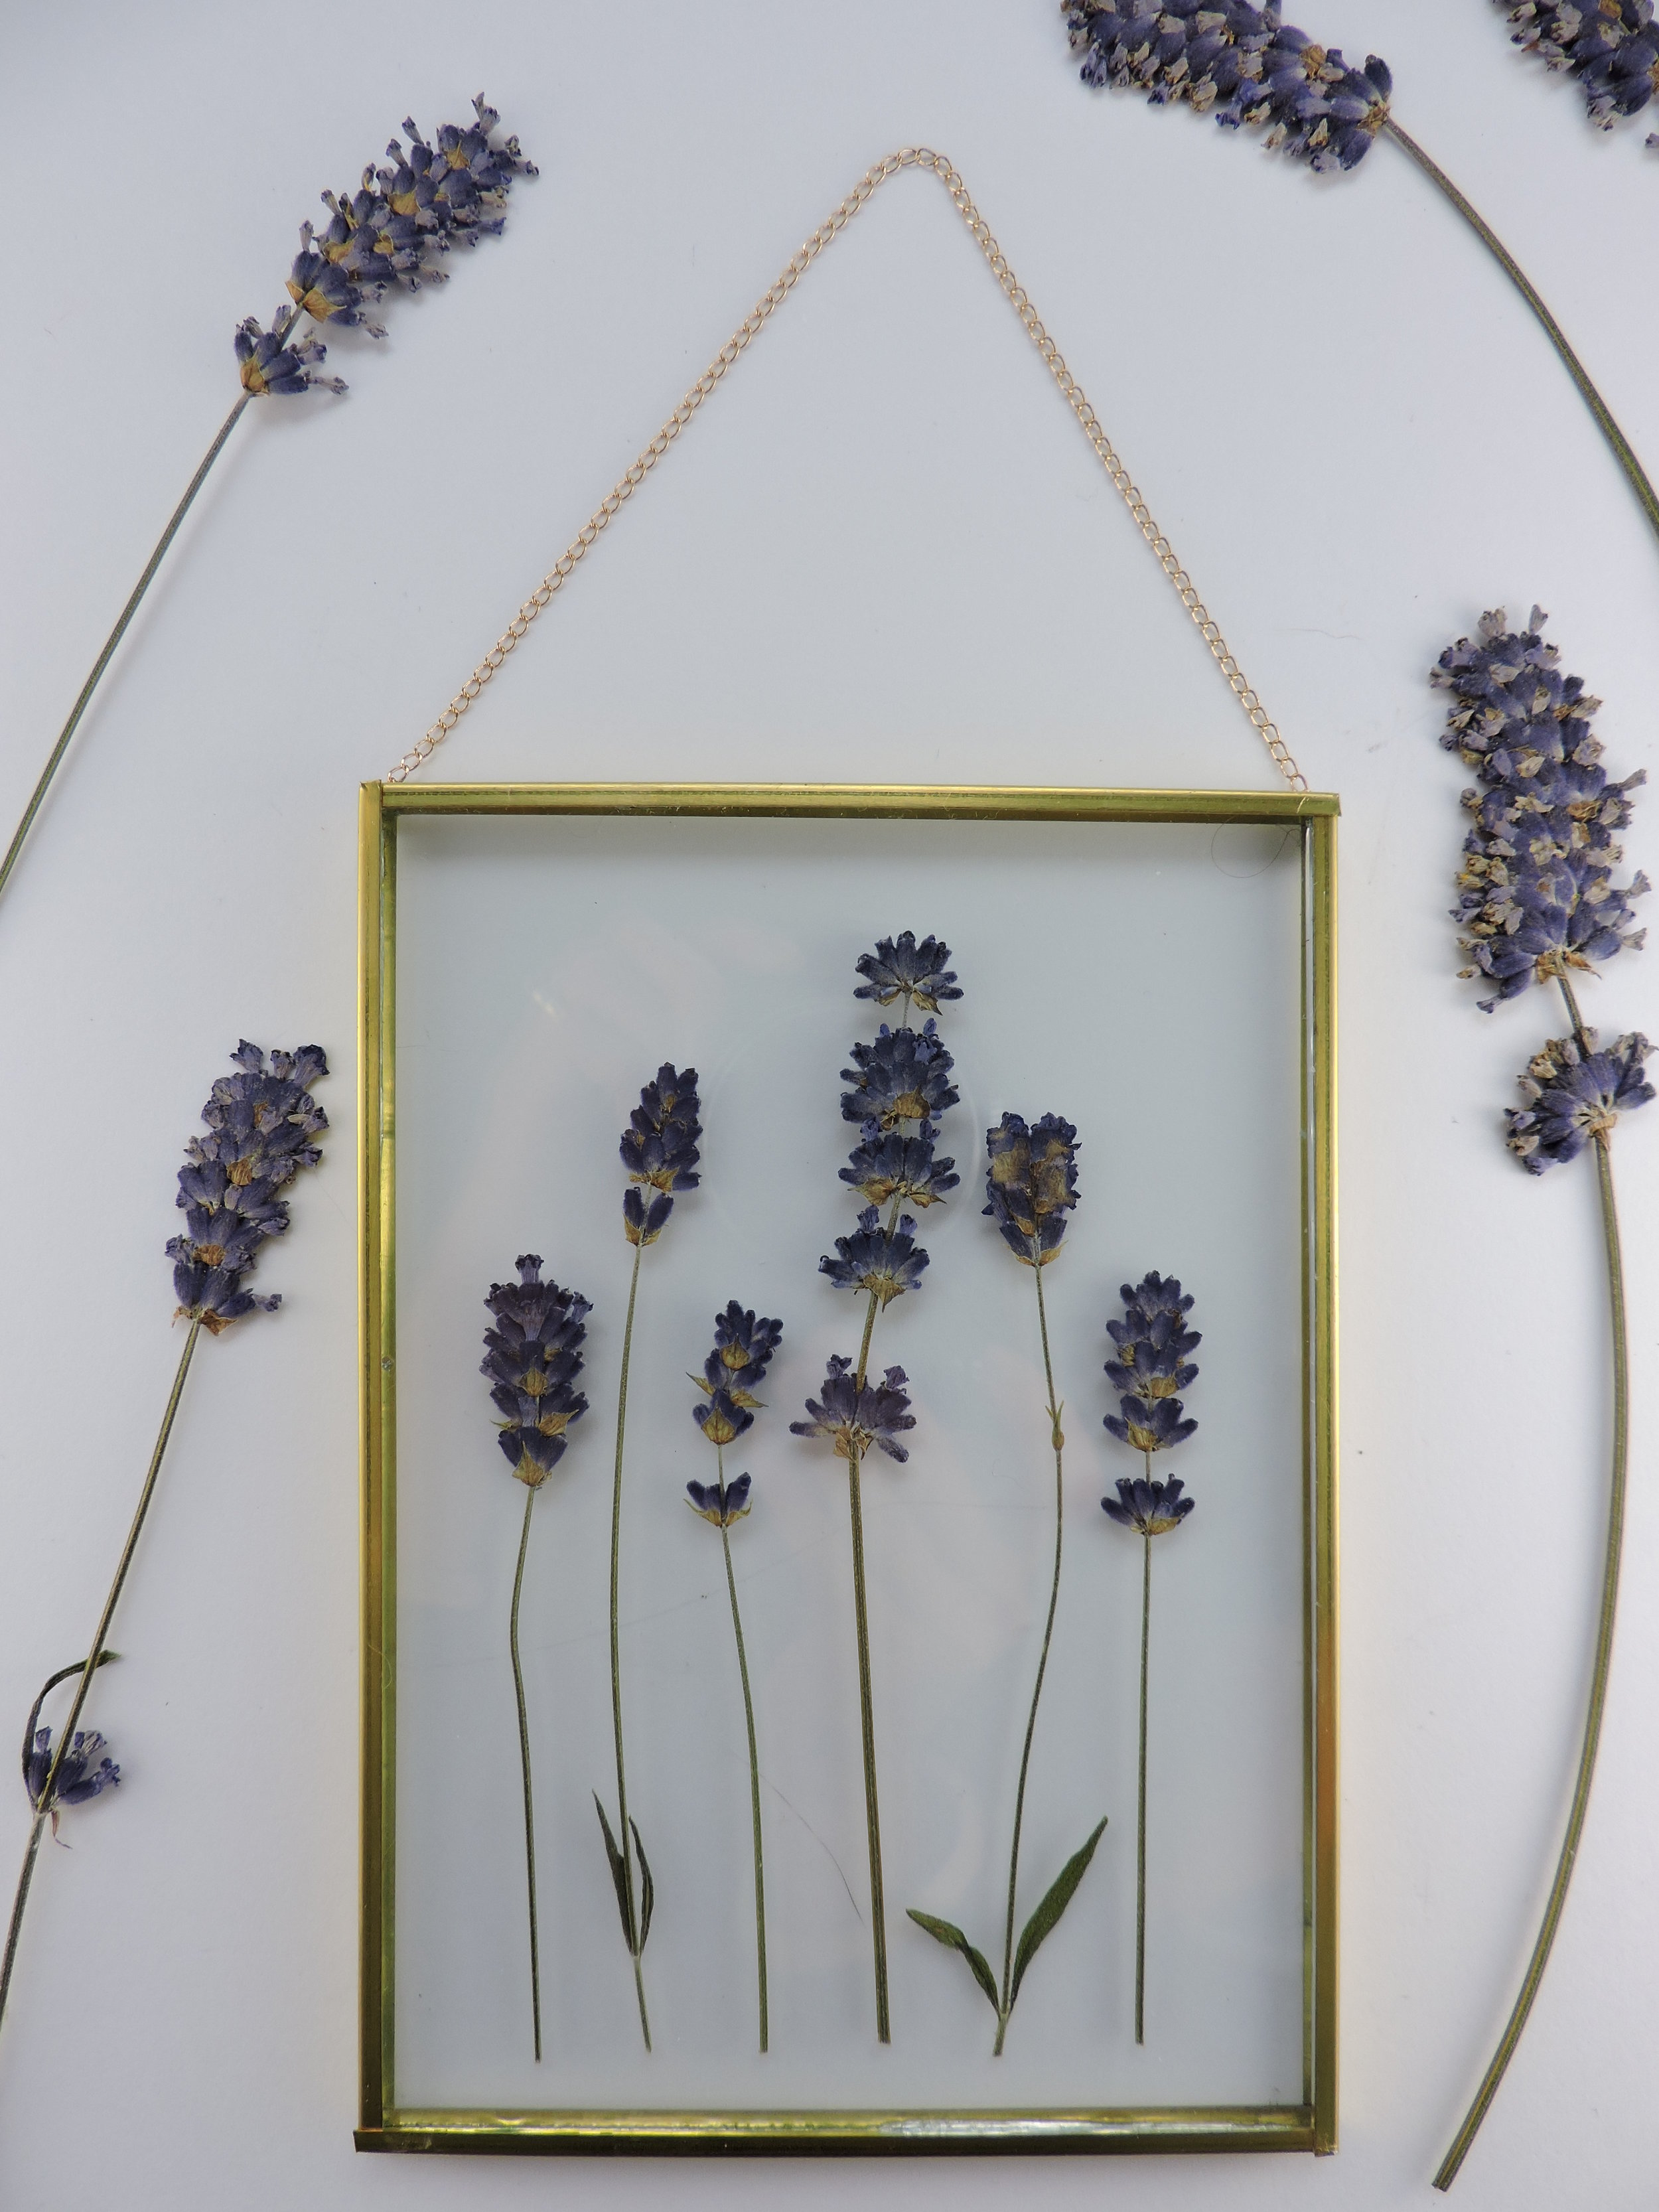 I love the simplicity of this piece with dried lavender